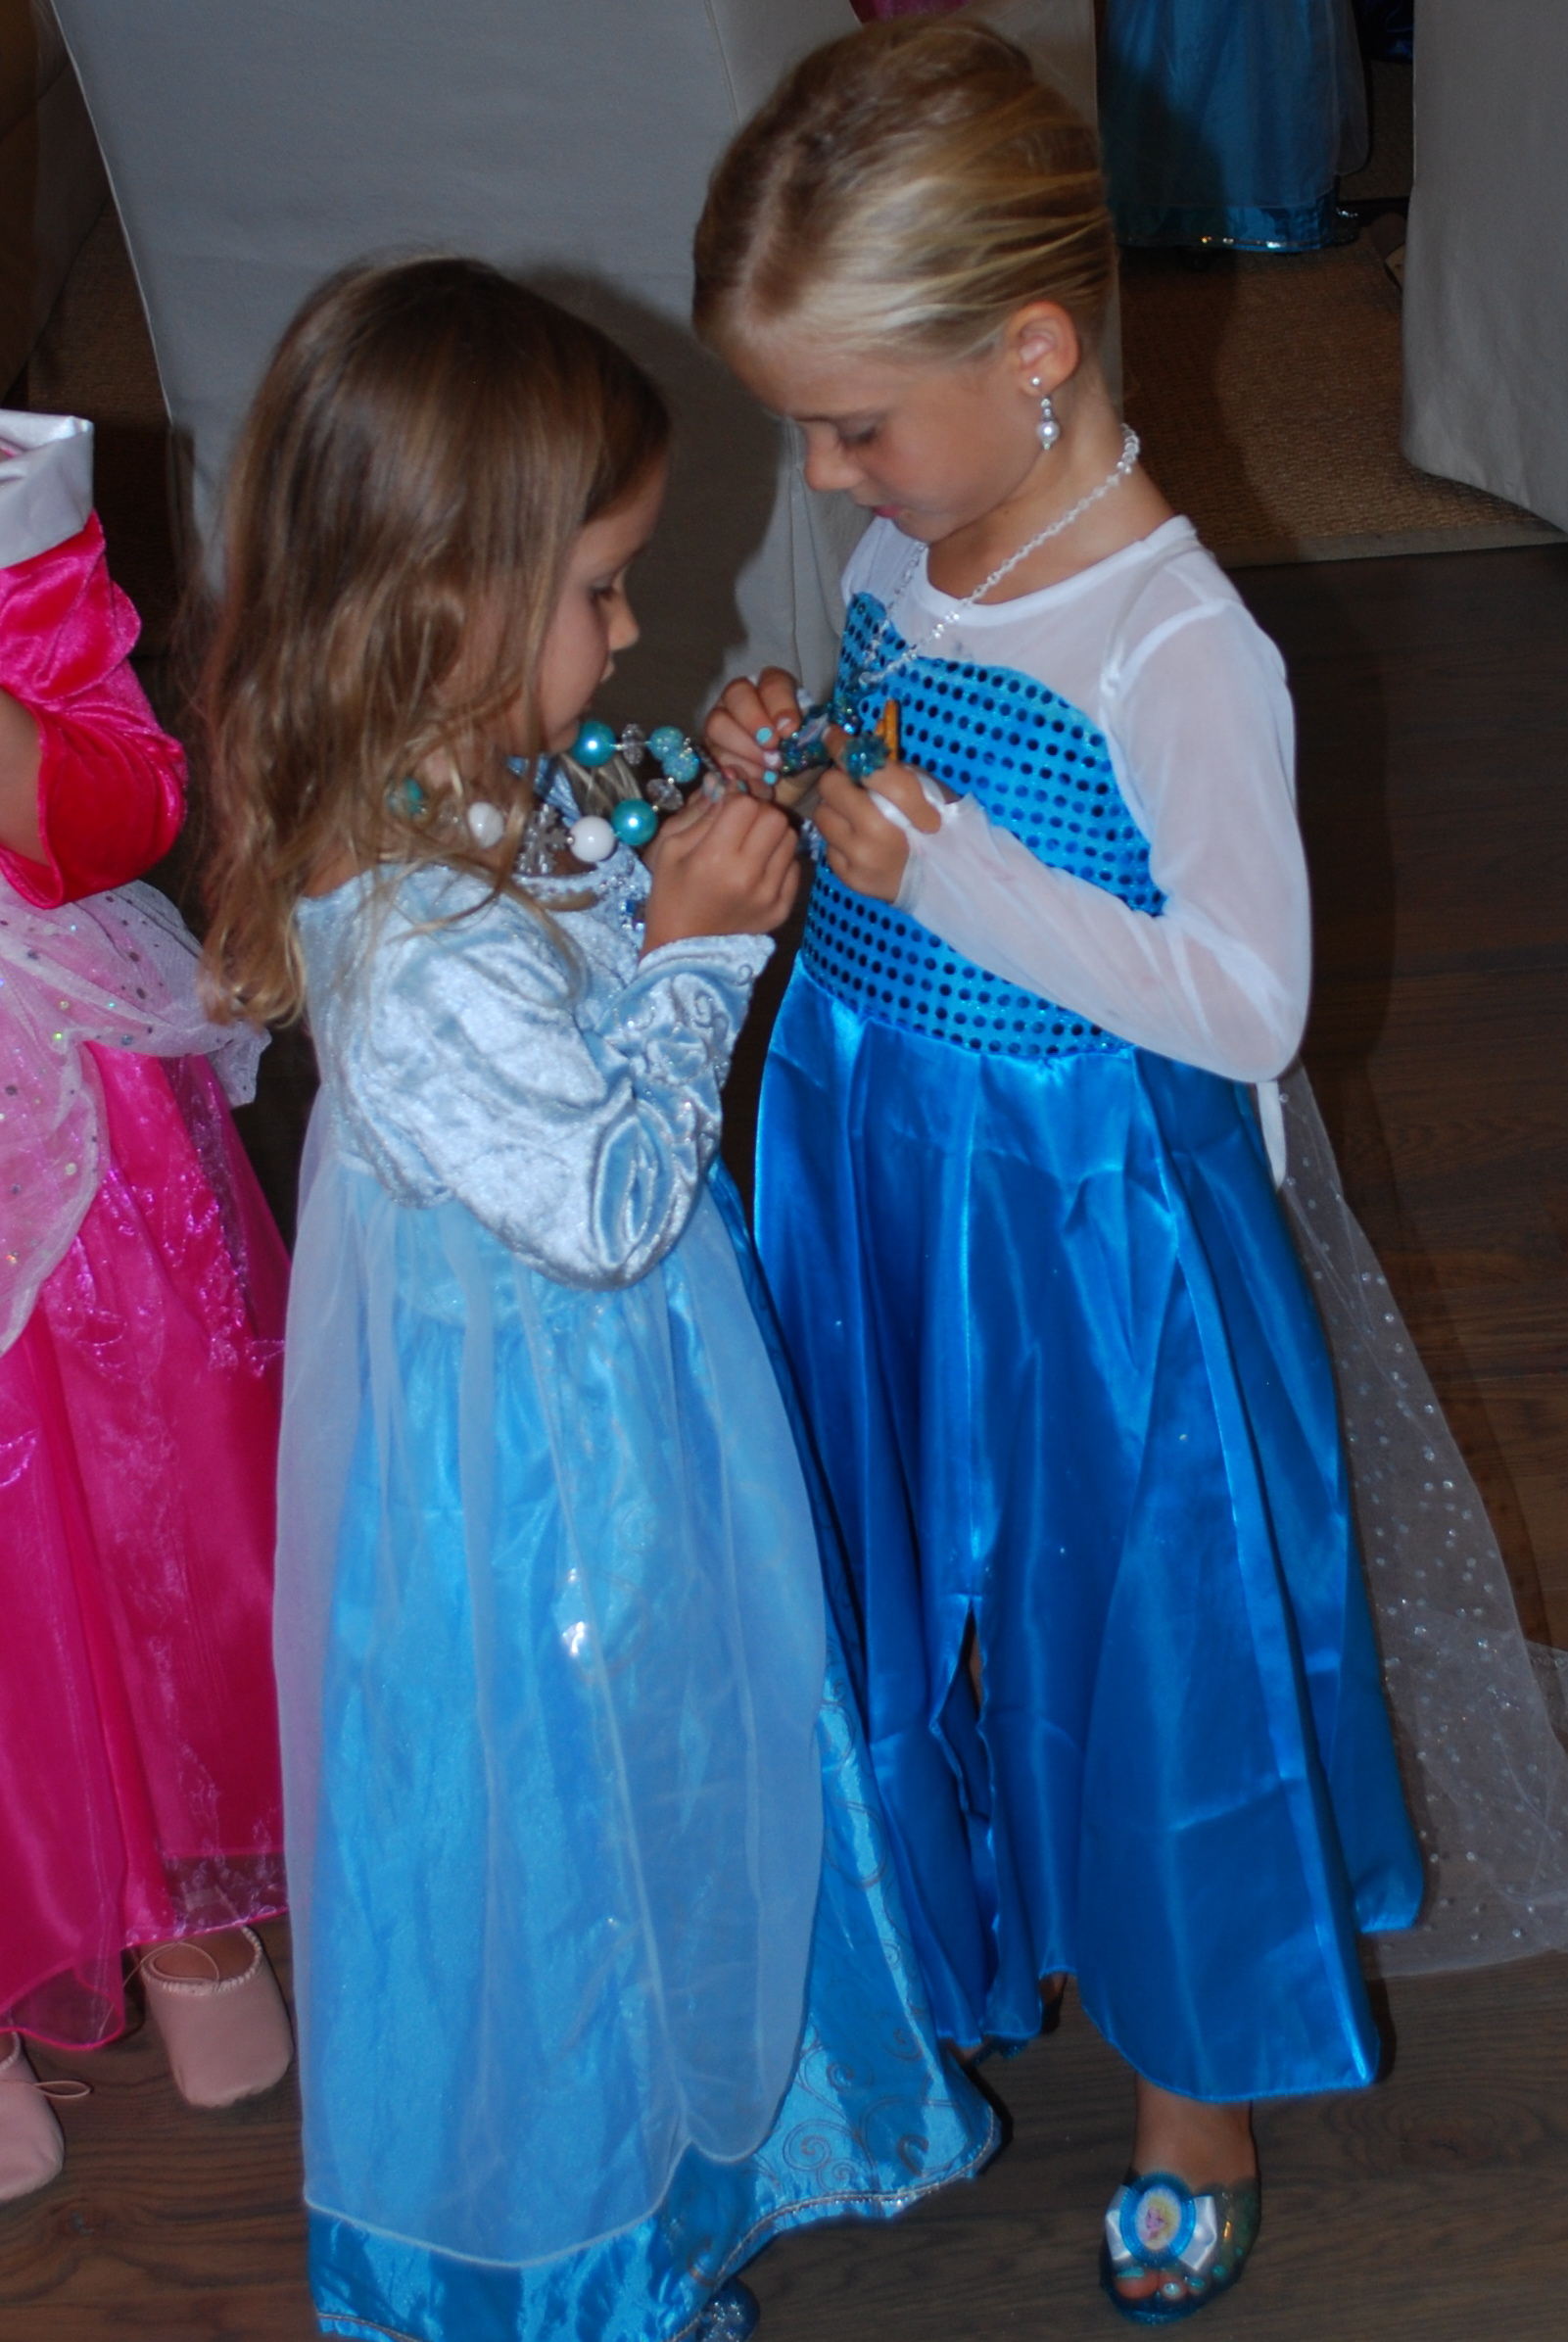 Fun with a sweet new friend, Josephine. Comparing jewels. :)